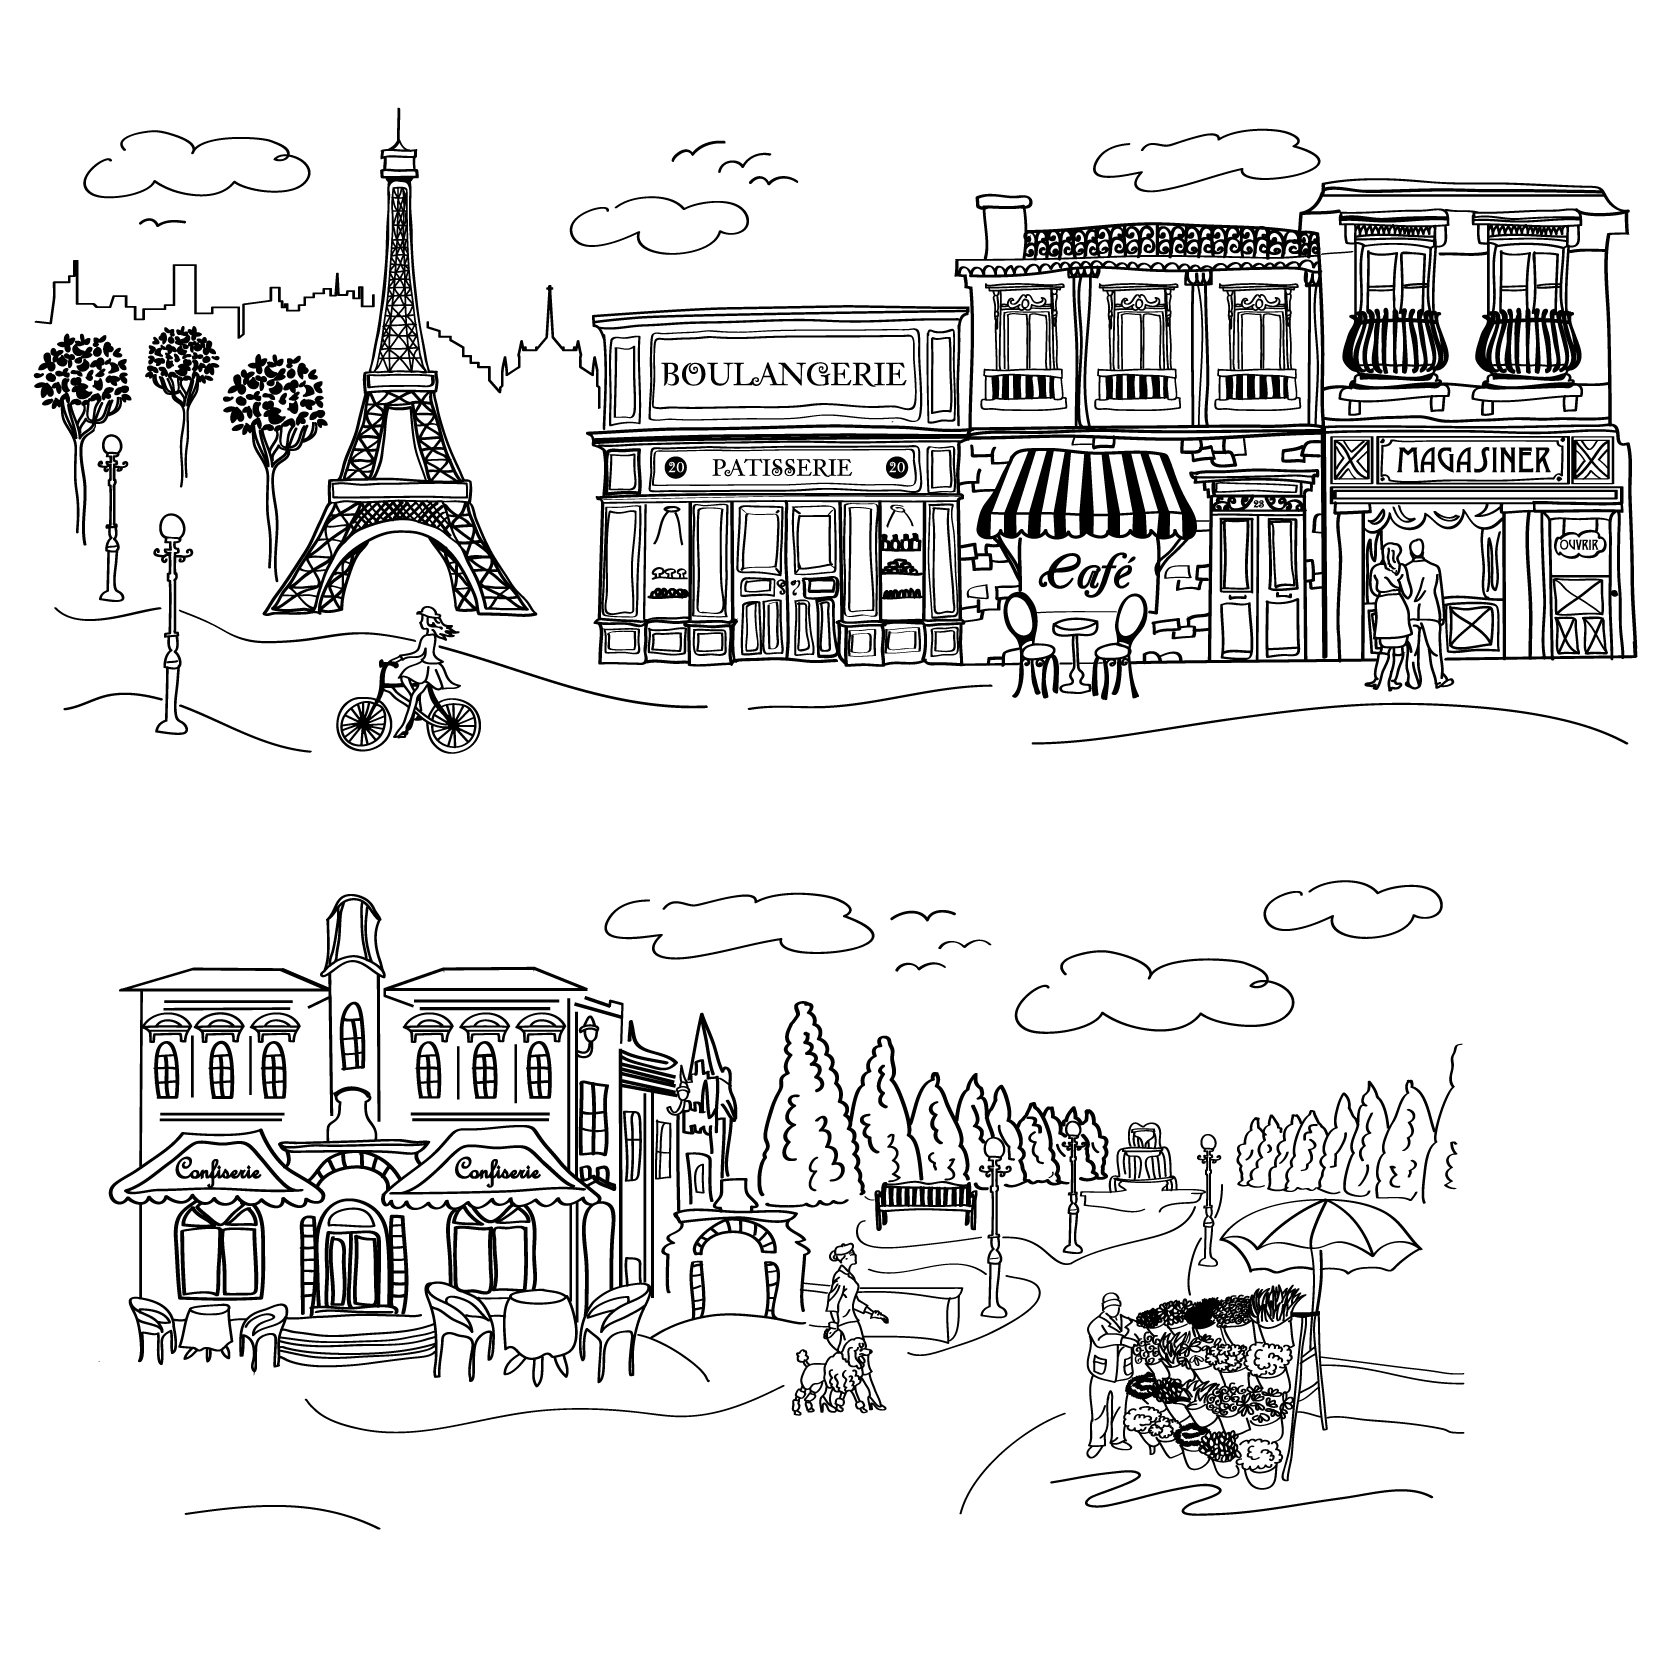 Doodle Paris Scene - Custom Vinyl Wall Art Decal Decor, Wall Decor, for Homes, Offices, Kids Rooms, Nurseries, Schools, High Schools, Colleges, Universities, Interior Designers, Architects, Remodelers